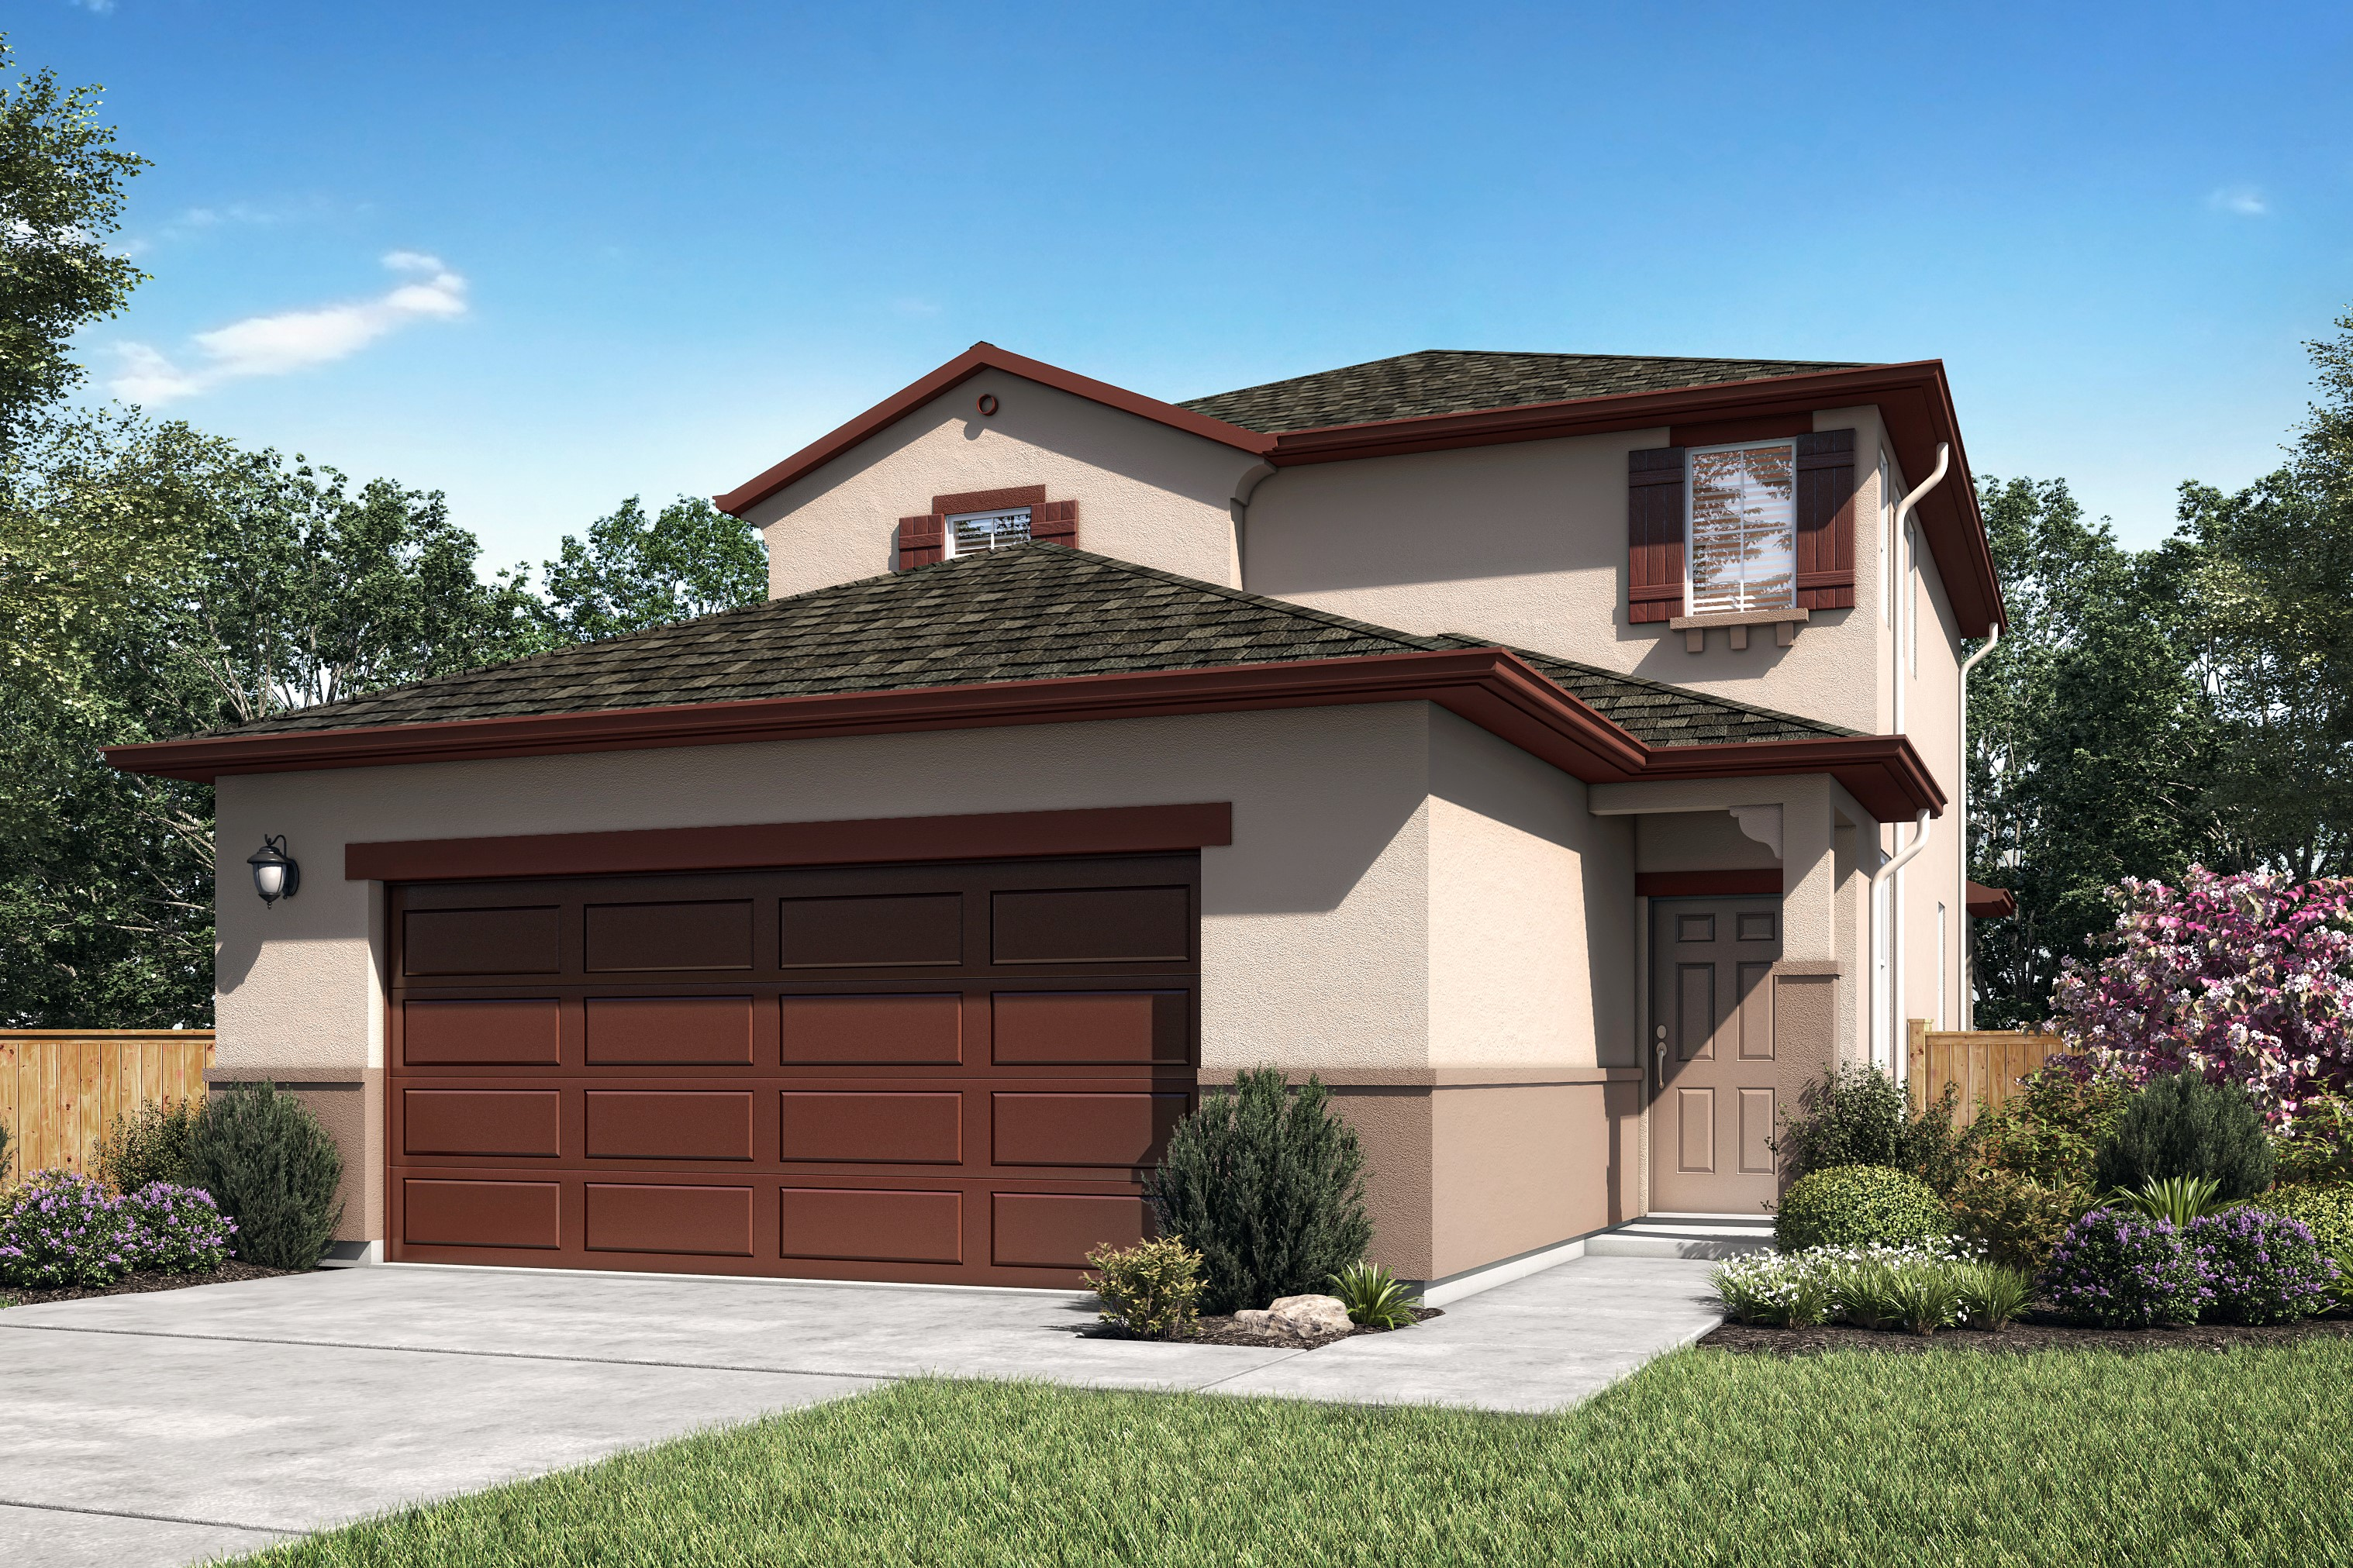 The brand-new Linden plan is now available at Cornerstone.